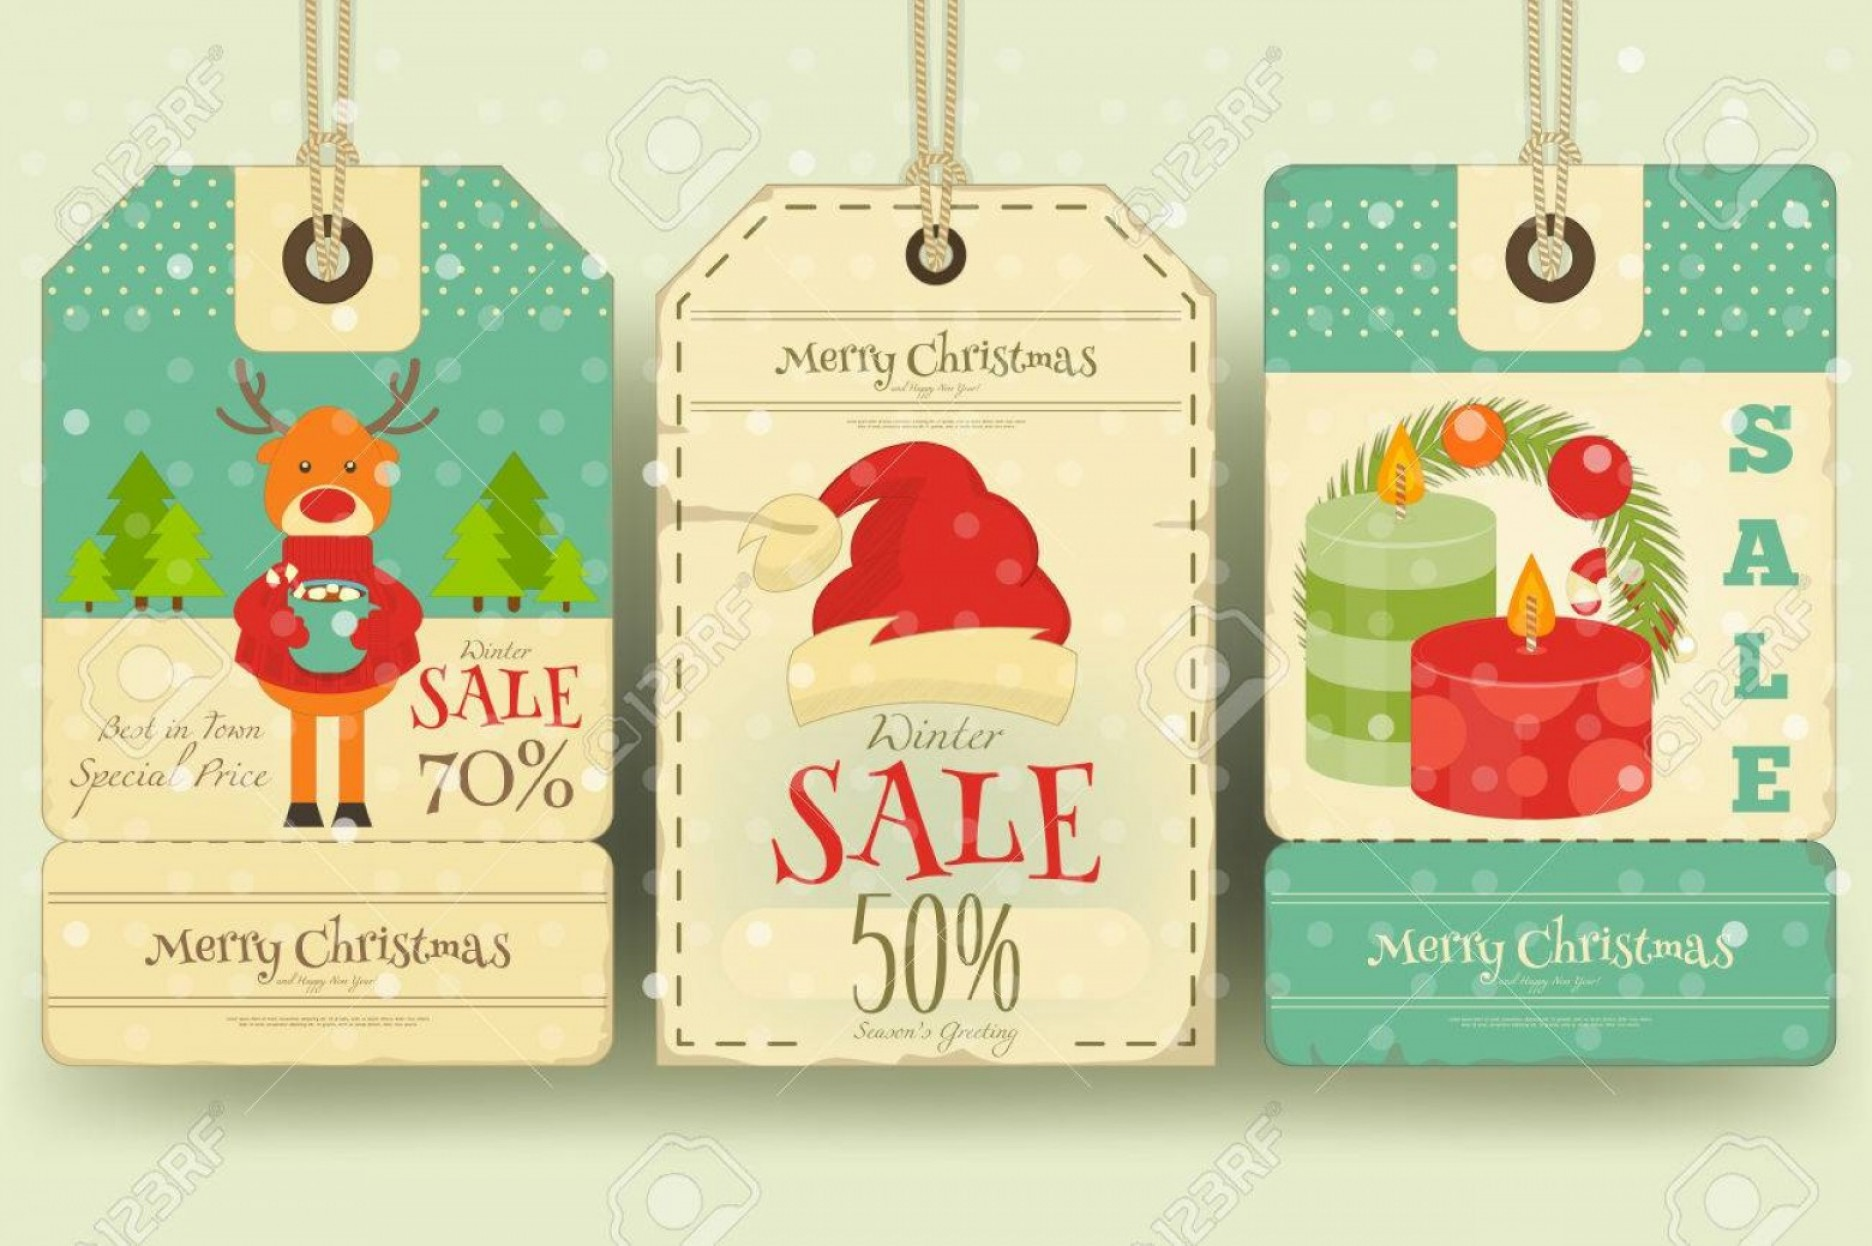 Vintage Xmas Sale Tag Vector: Photostock Vector Christmas Sale Tags In Retro Style With Xmas Decoration Winter Sell Out Labels Collection Vector Ill